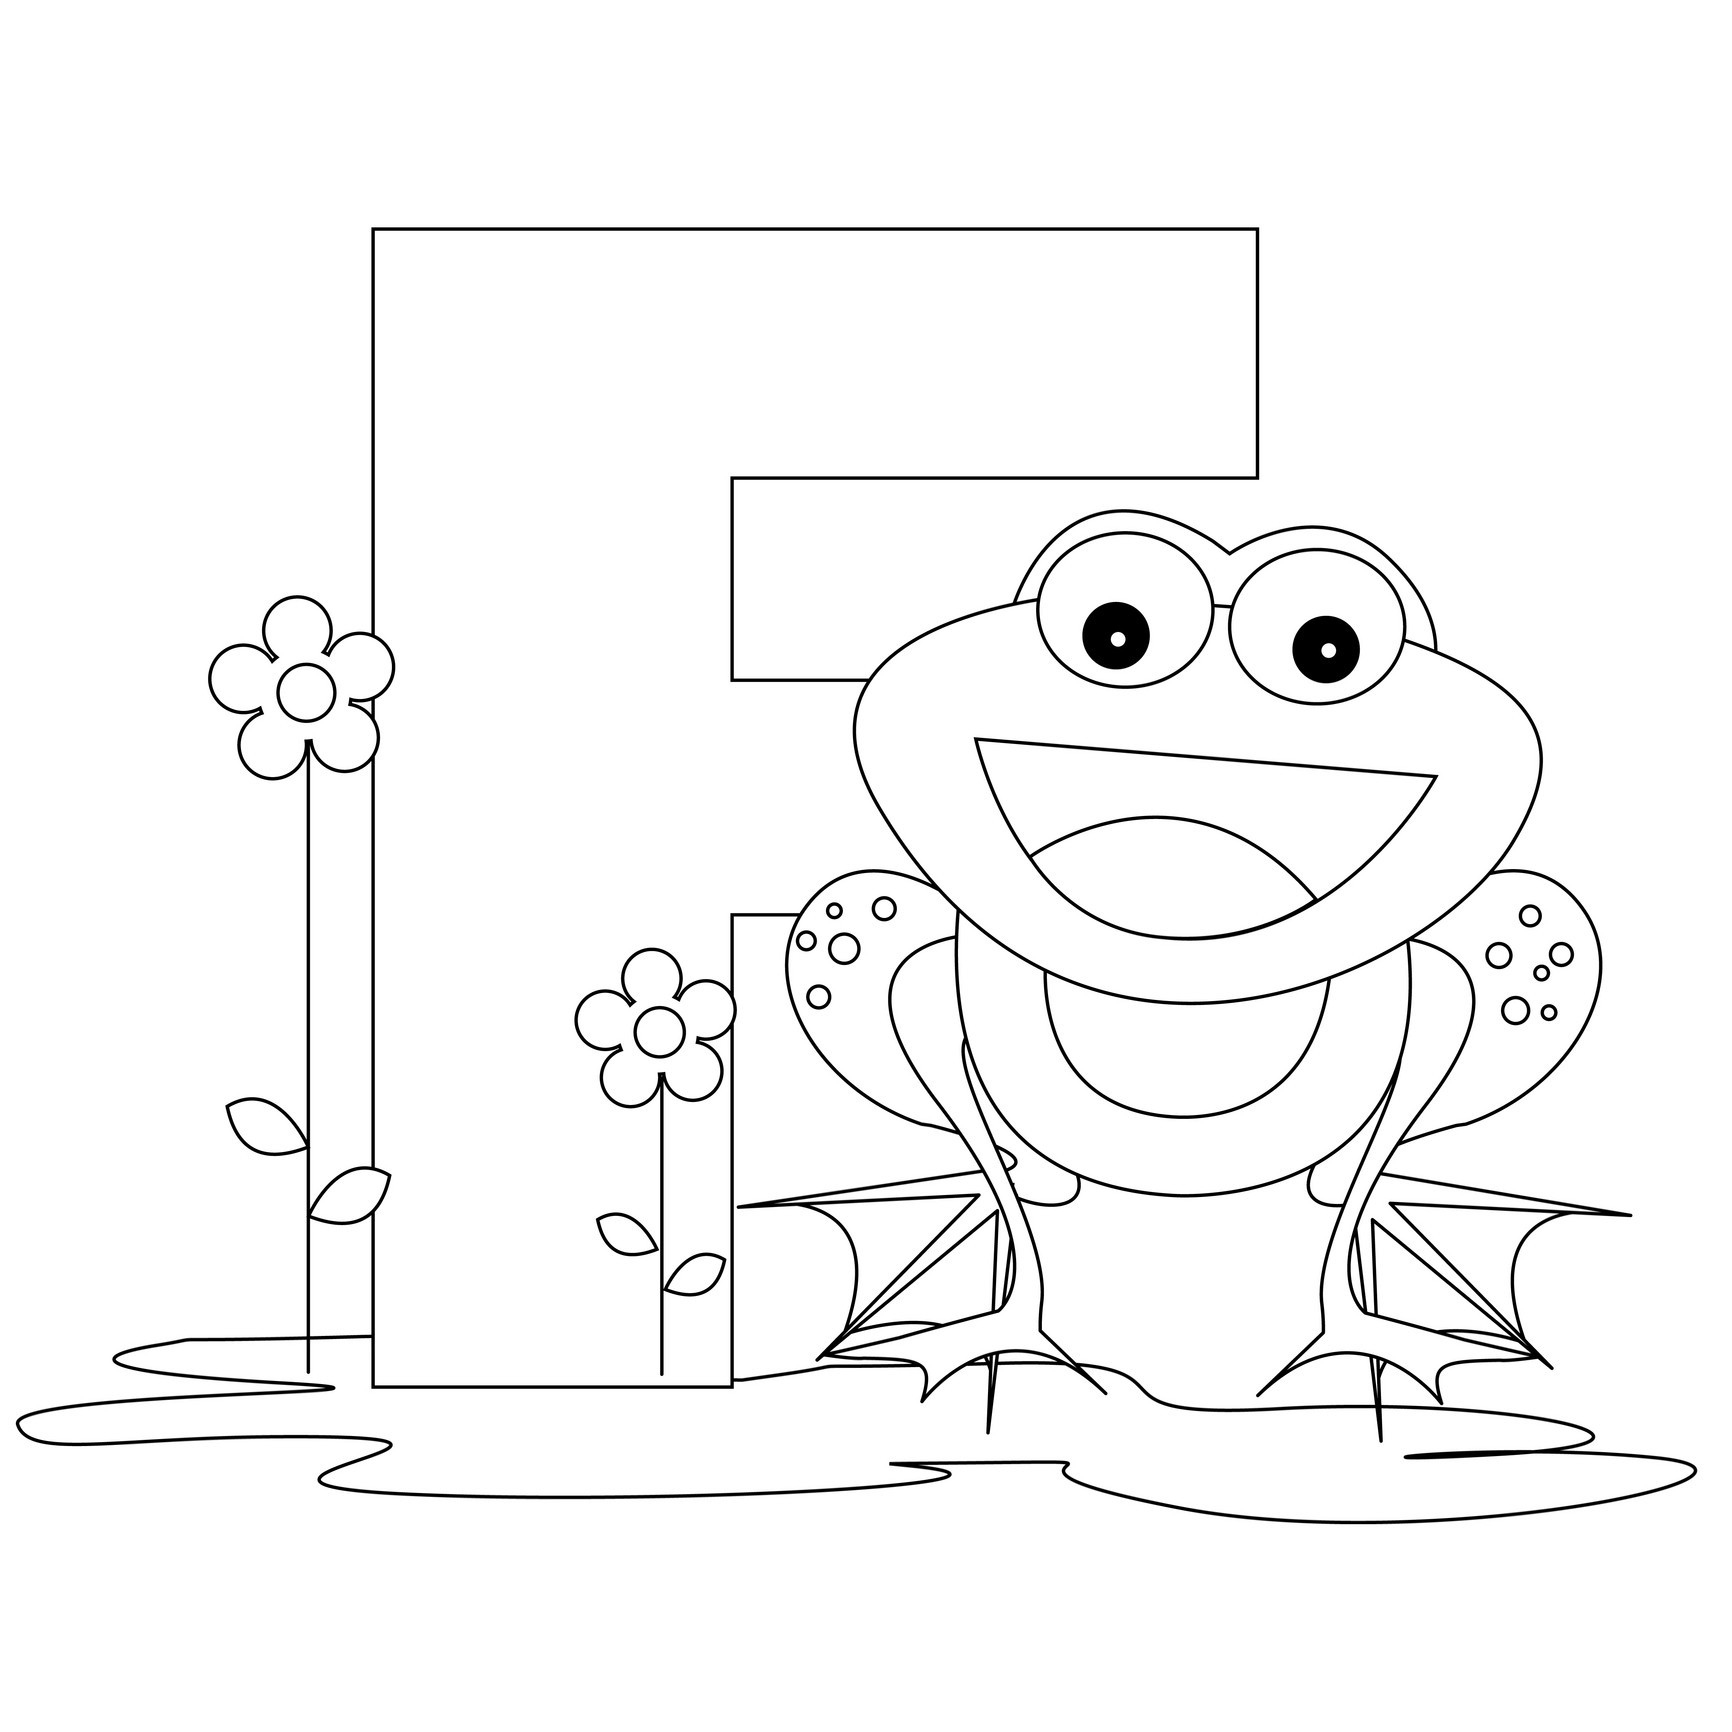 Coloring pages printable letter m - Alphabet Coloring Pages Letter F